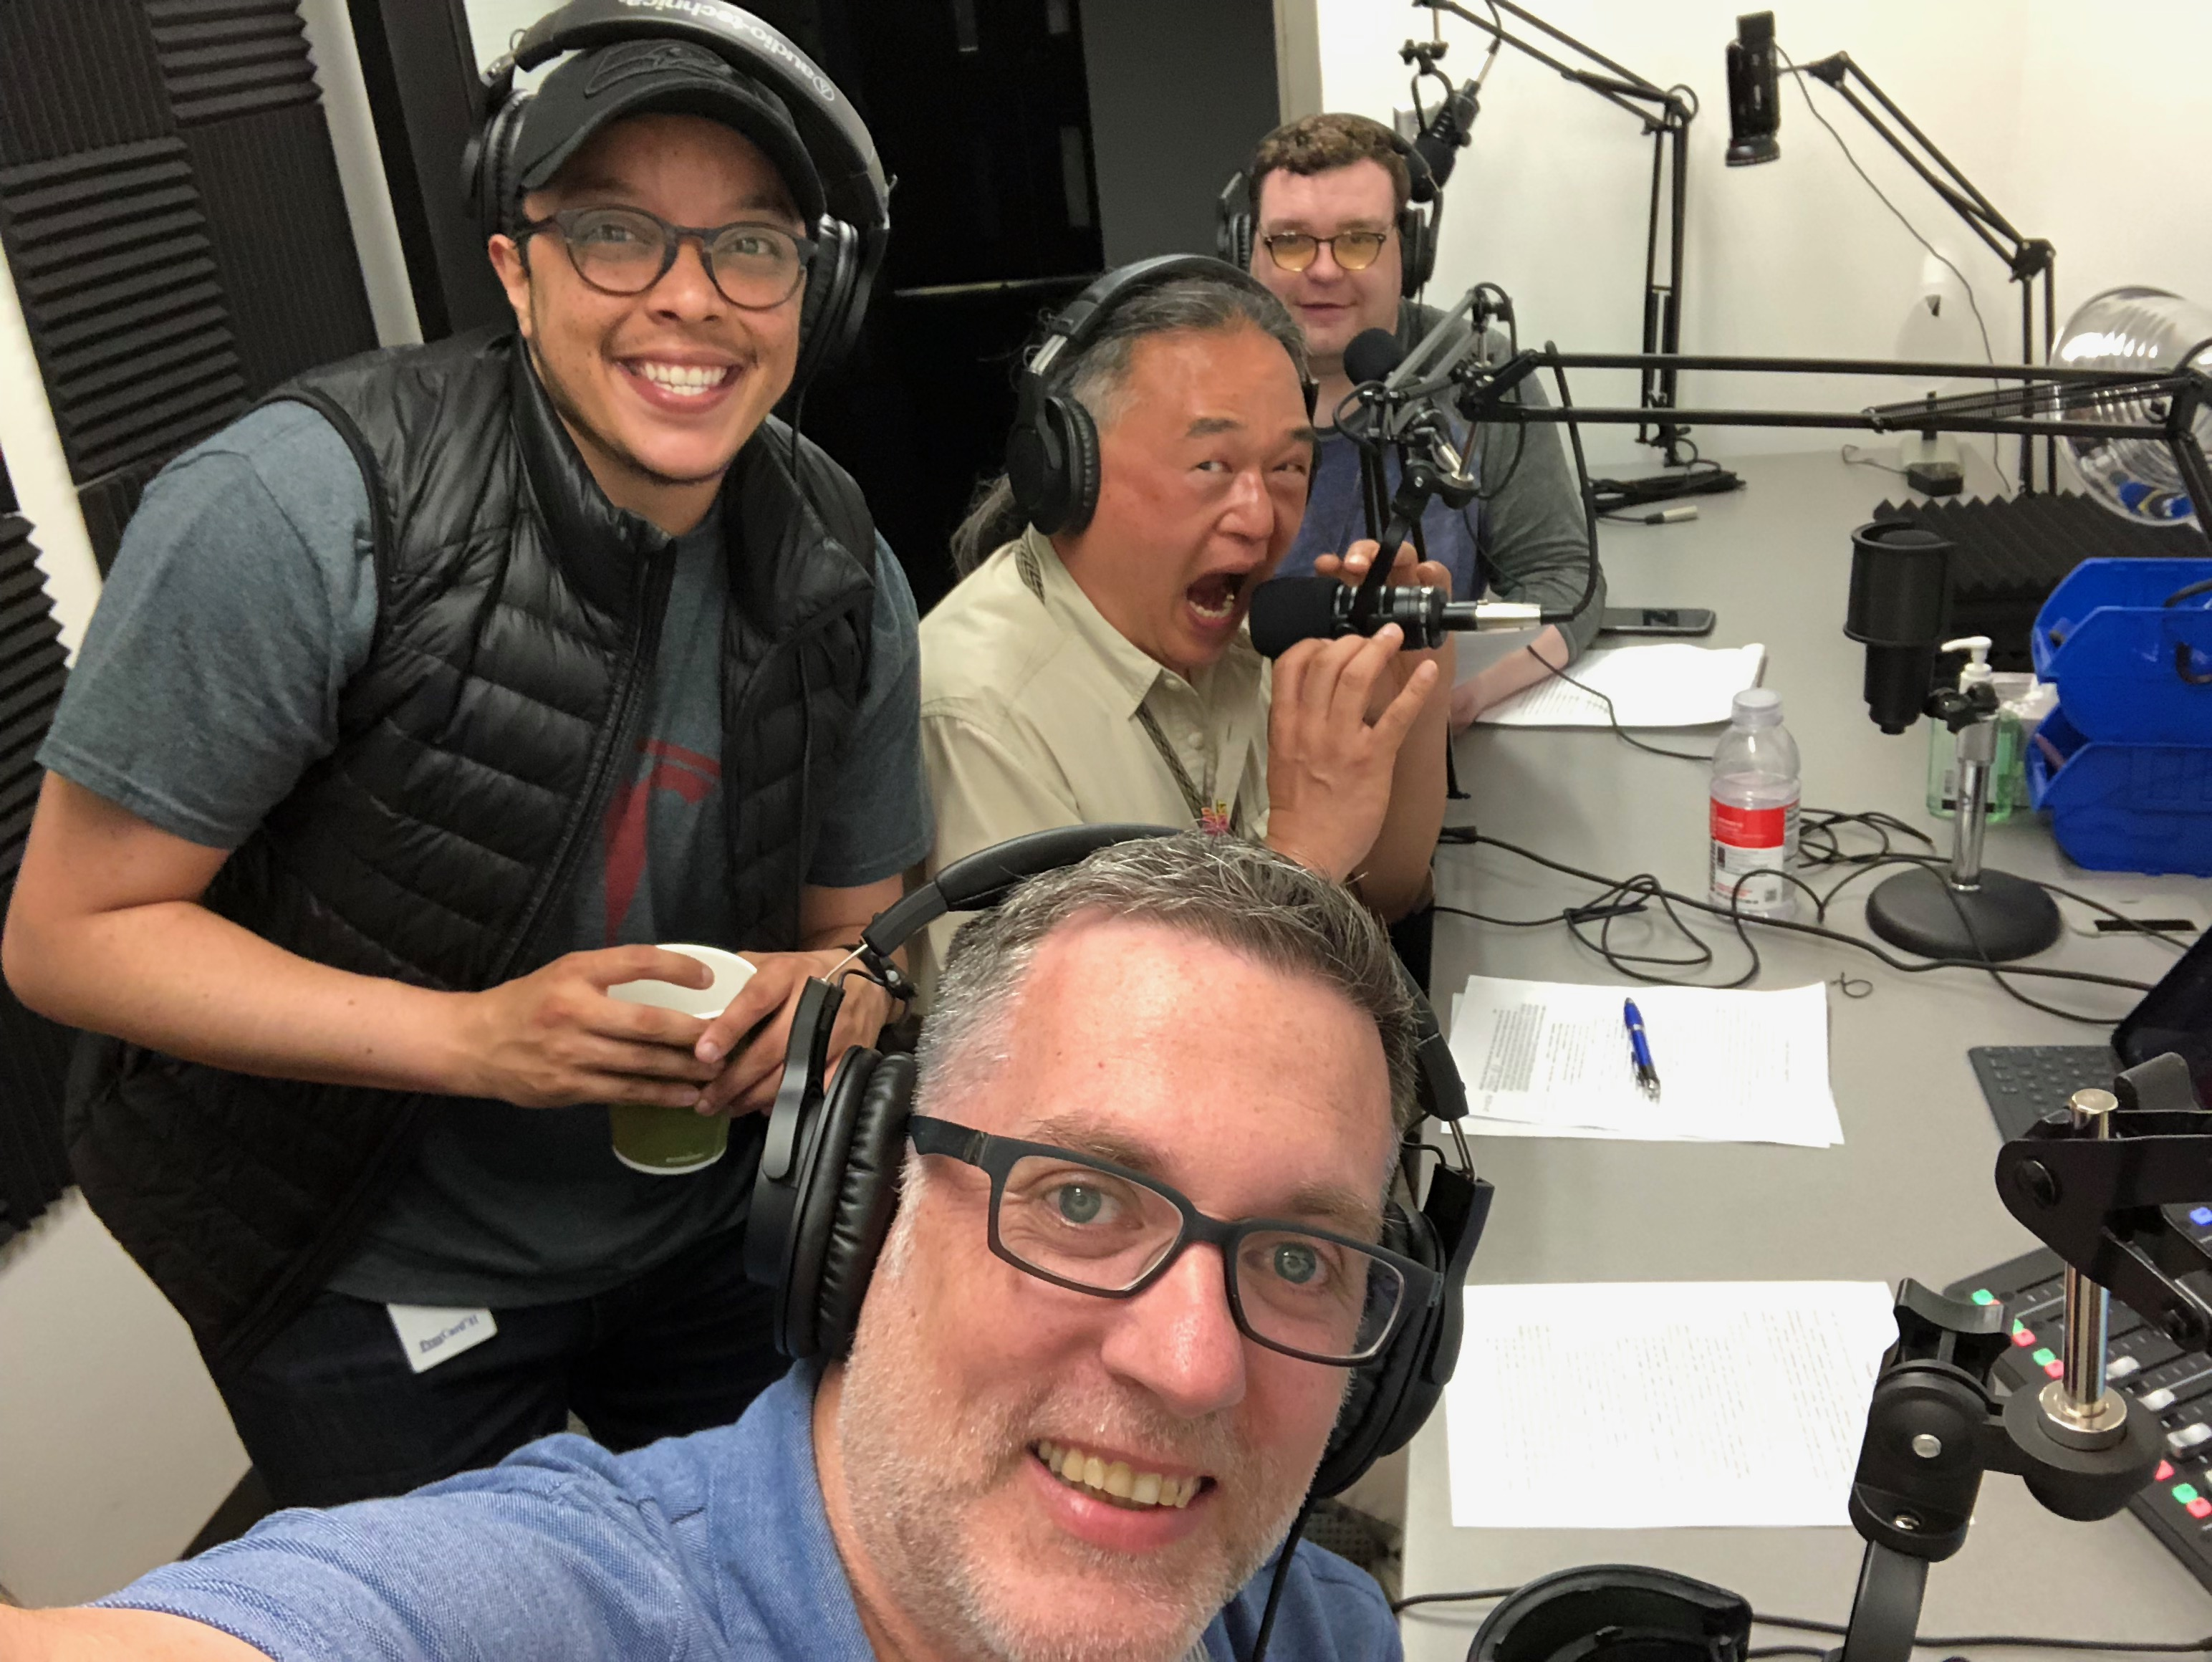 Seattle Central Podcast Production Crew